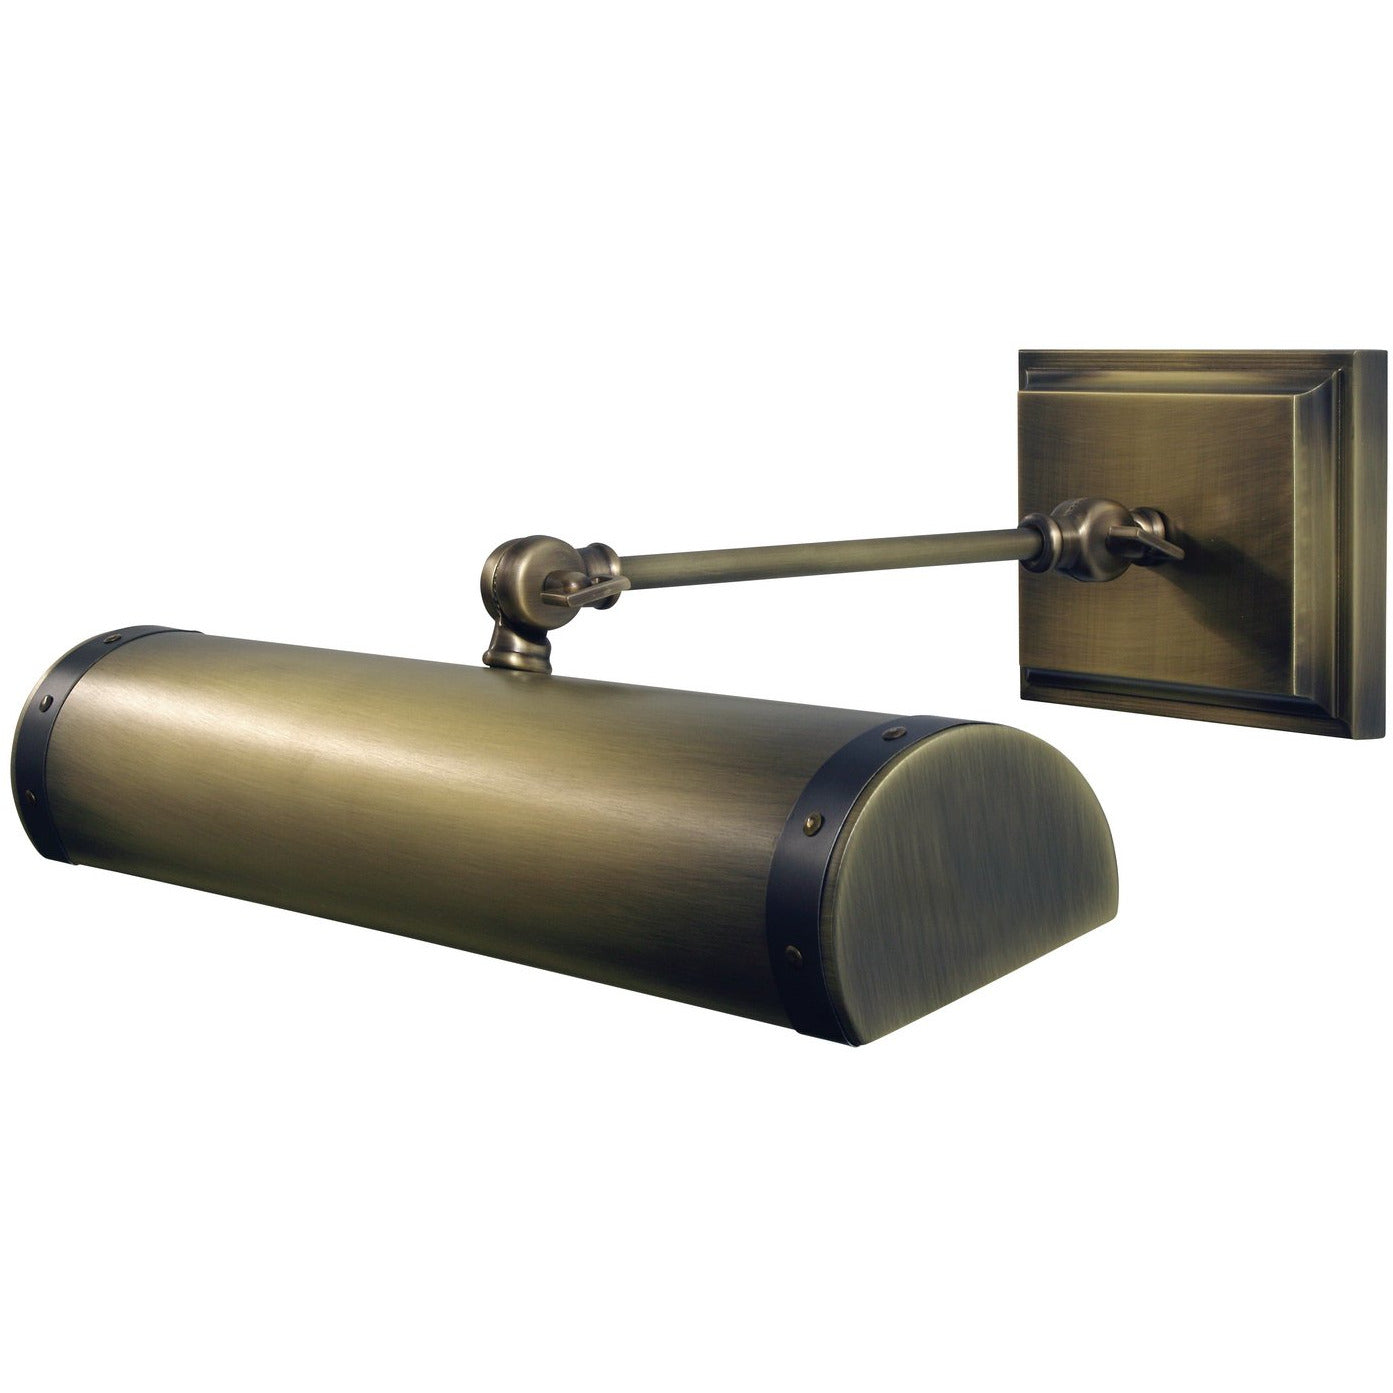 House of Troy - DSTLEDZ16-ABMB - LED Picture Light - Steamer - Antique Brass w/ Mahogany Bronze accents